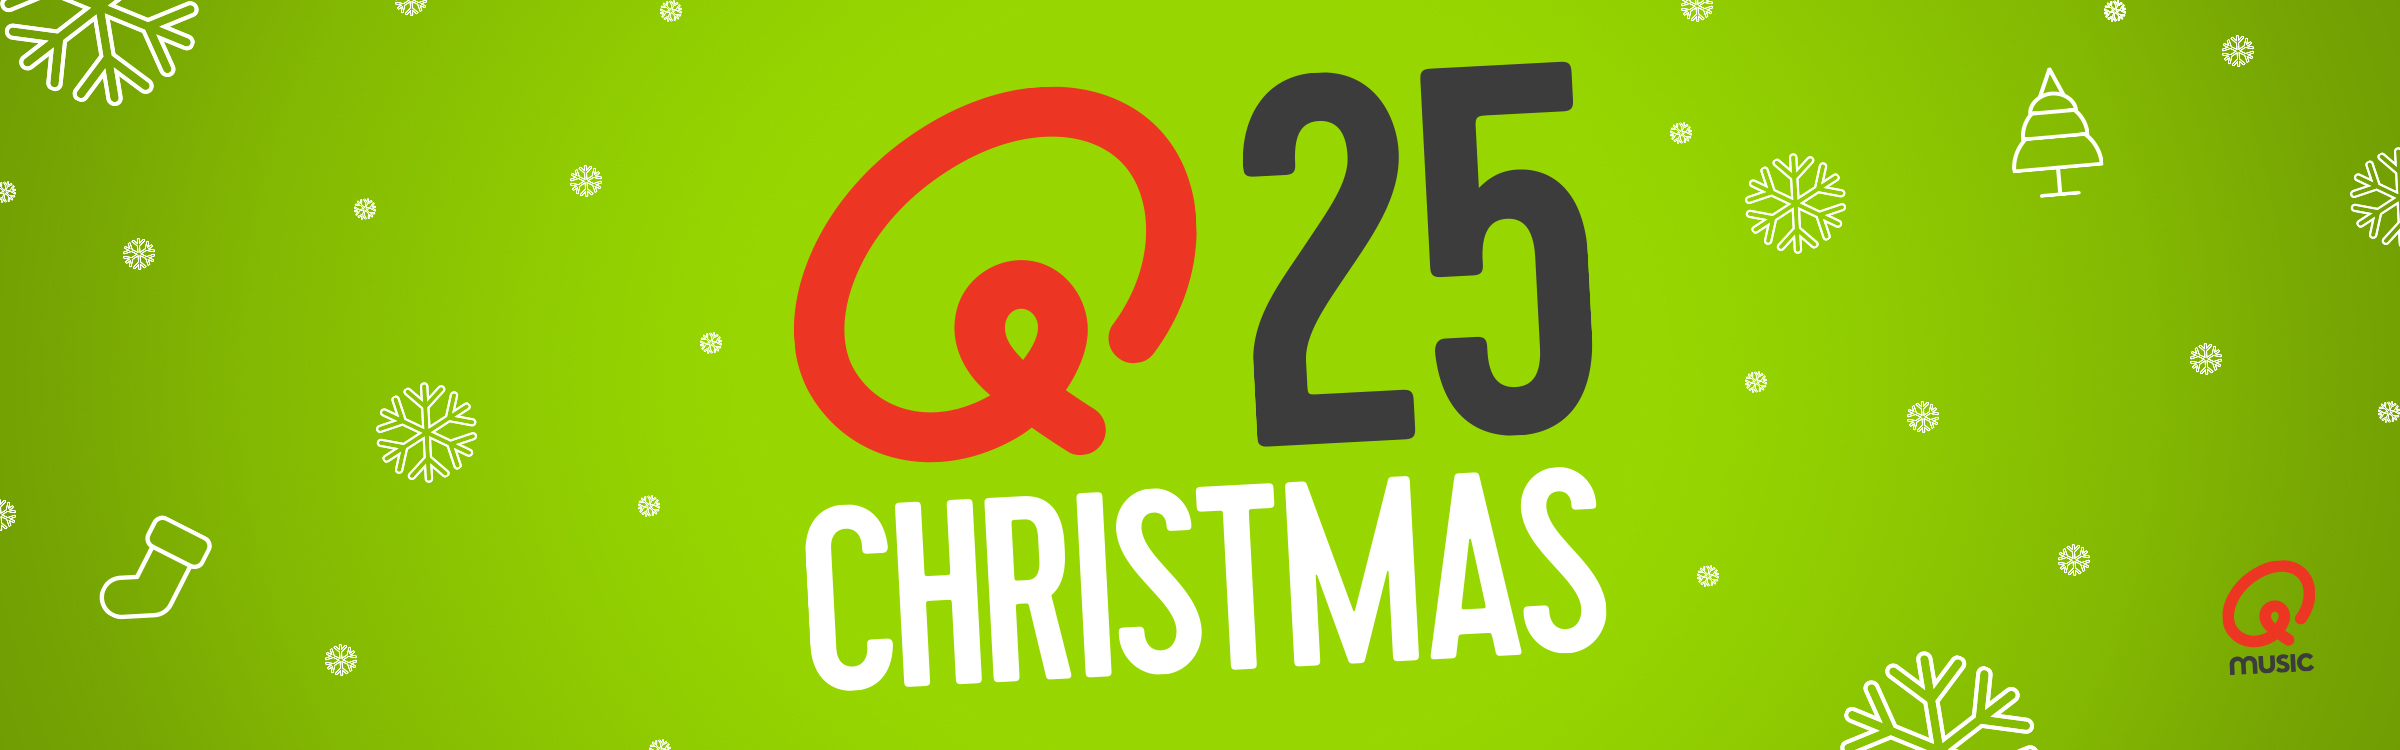 Qmusic actionheader qchristmas25 2